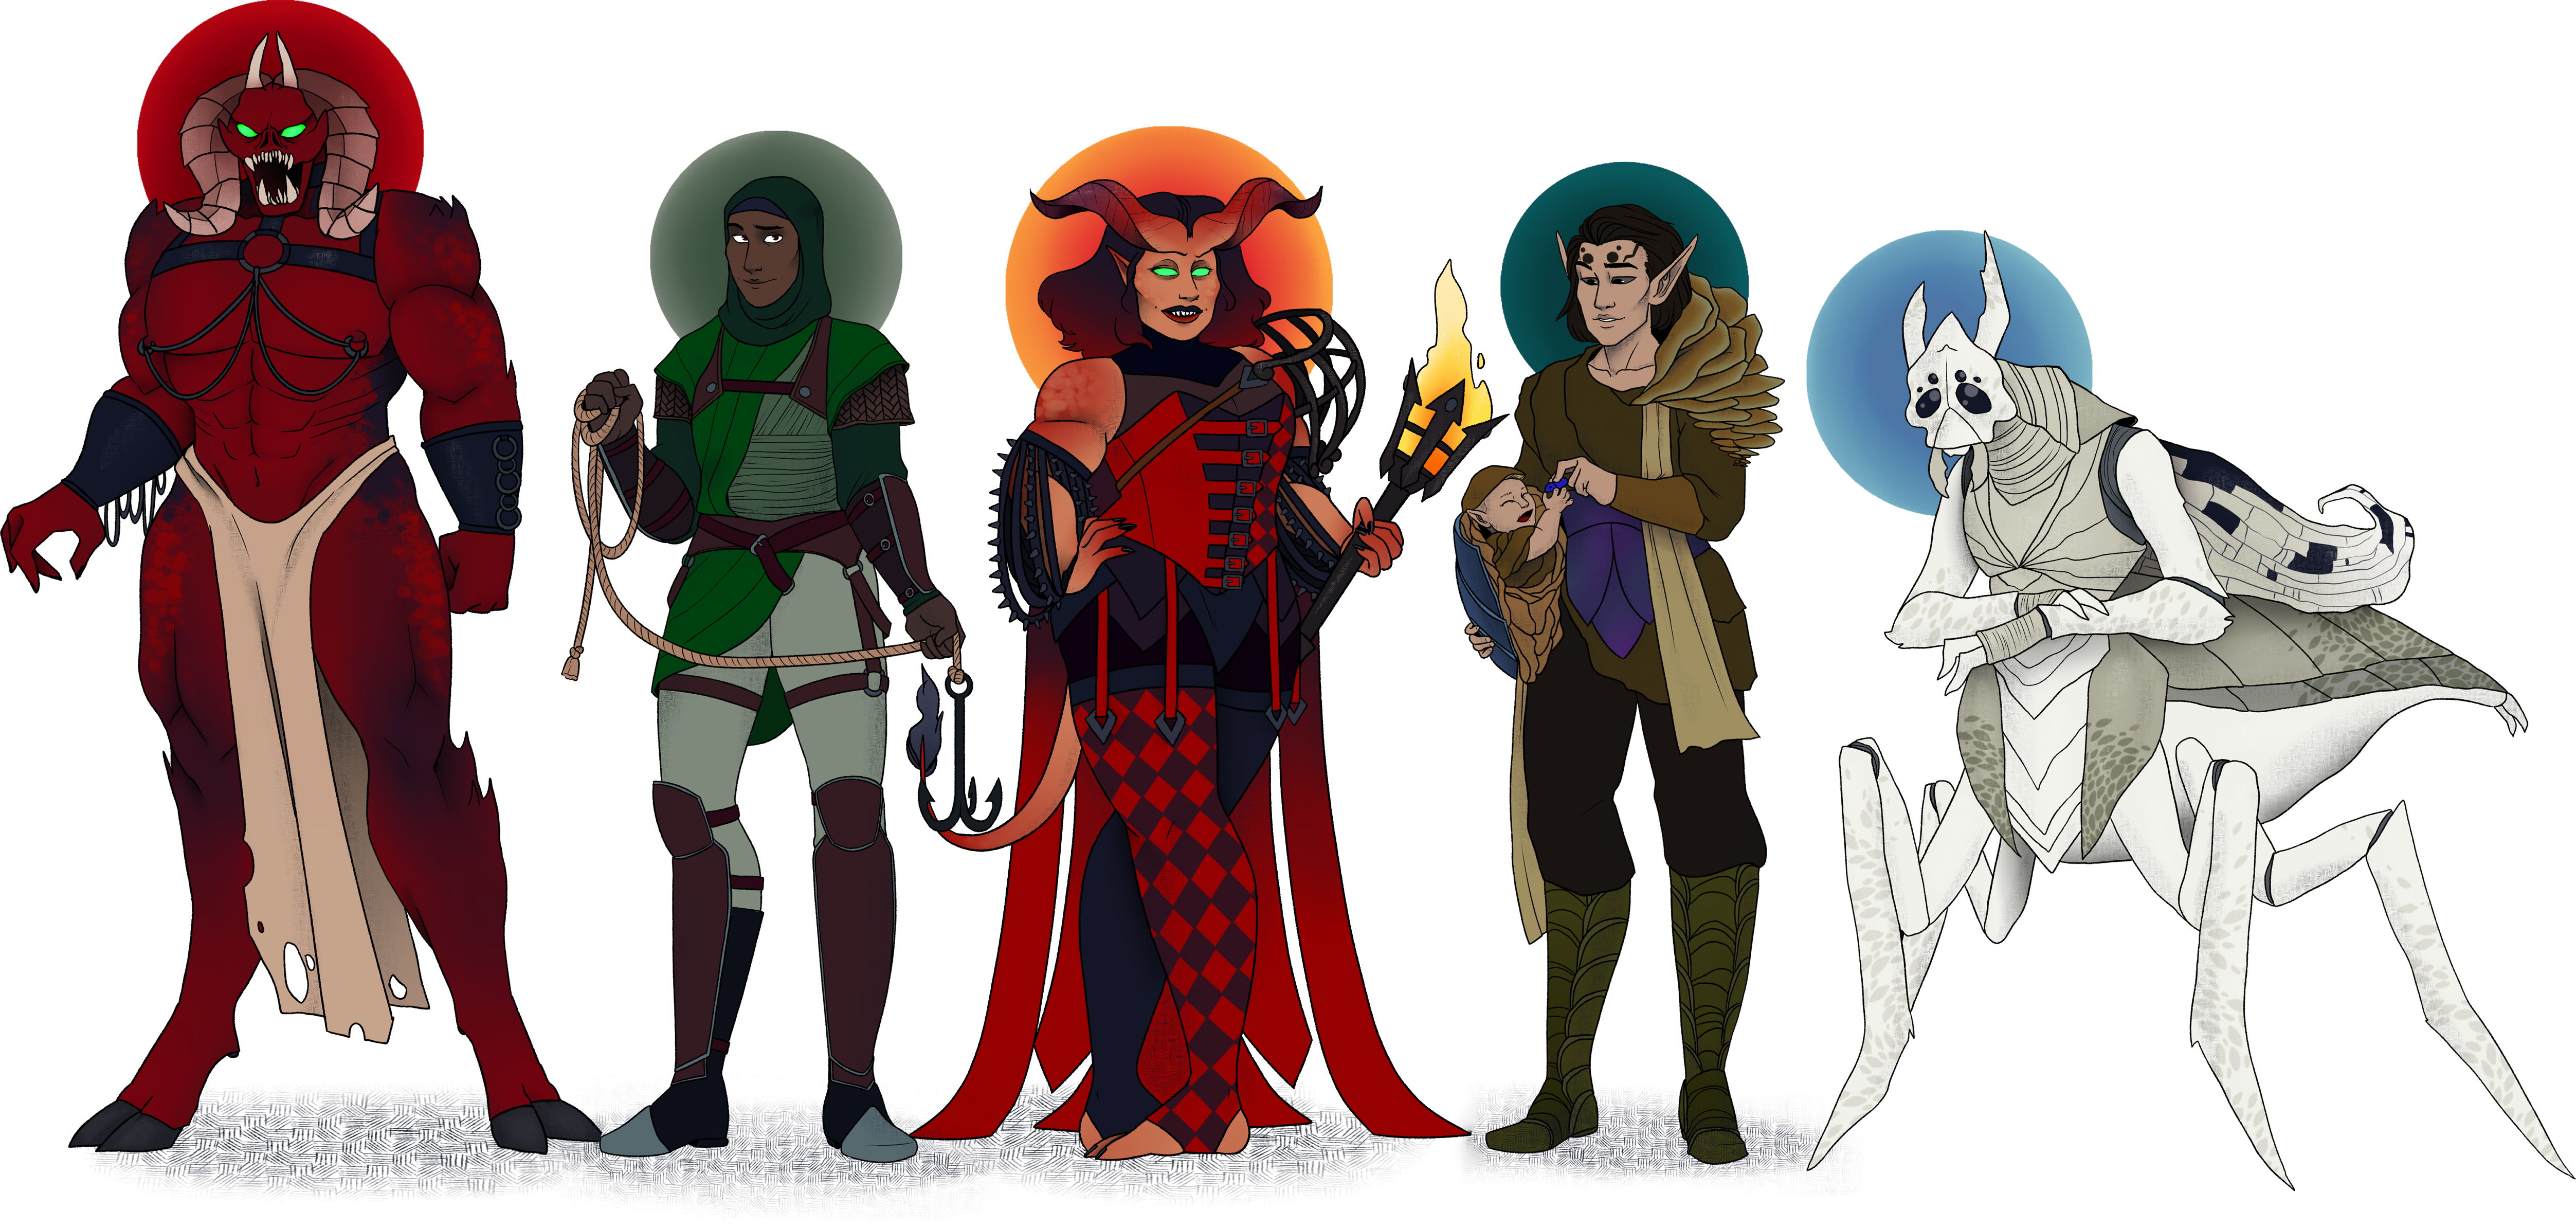 5 Individuals: a towering demon with black and red skin, horns, a snarling face and glowing green eyes; a dark-skinned elf in a climbing harness and wearing a headscarf, holding a rope and grapplig hook; a tiefling-like half-demon with reddish skin and glowing green eyes, weaing a red-and-black harlequin costume and holding a black torch; an elf with dark skin dressed in fungal clothing, holding an infant and passing a berry to the baby; and a pale, hunched mantis-like insect with curling wings